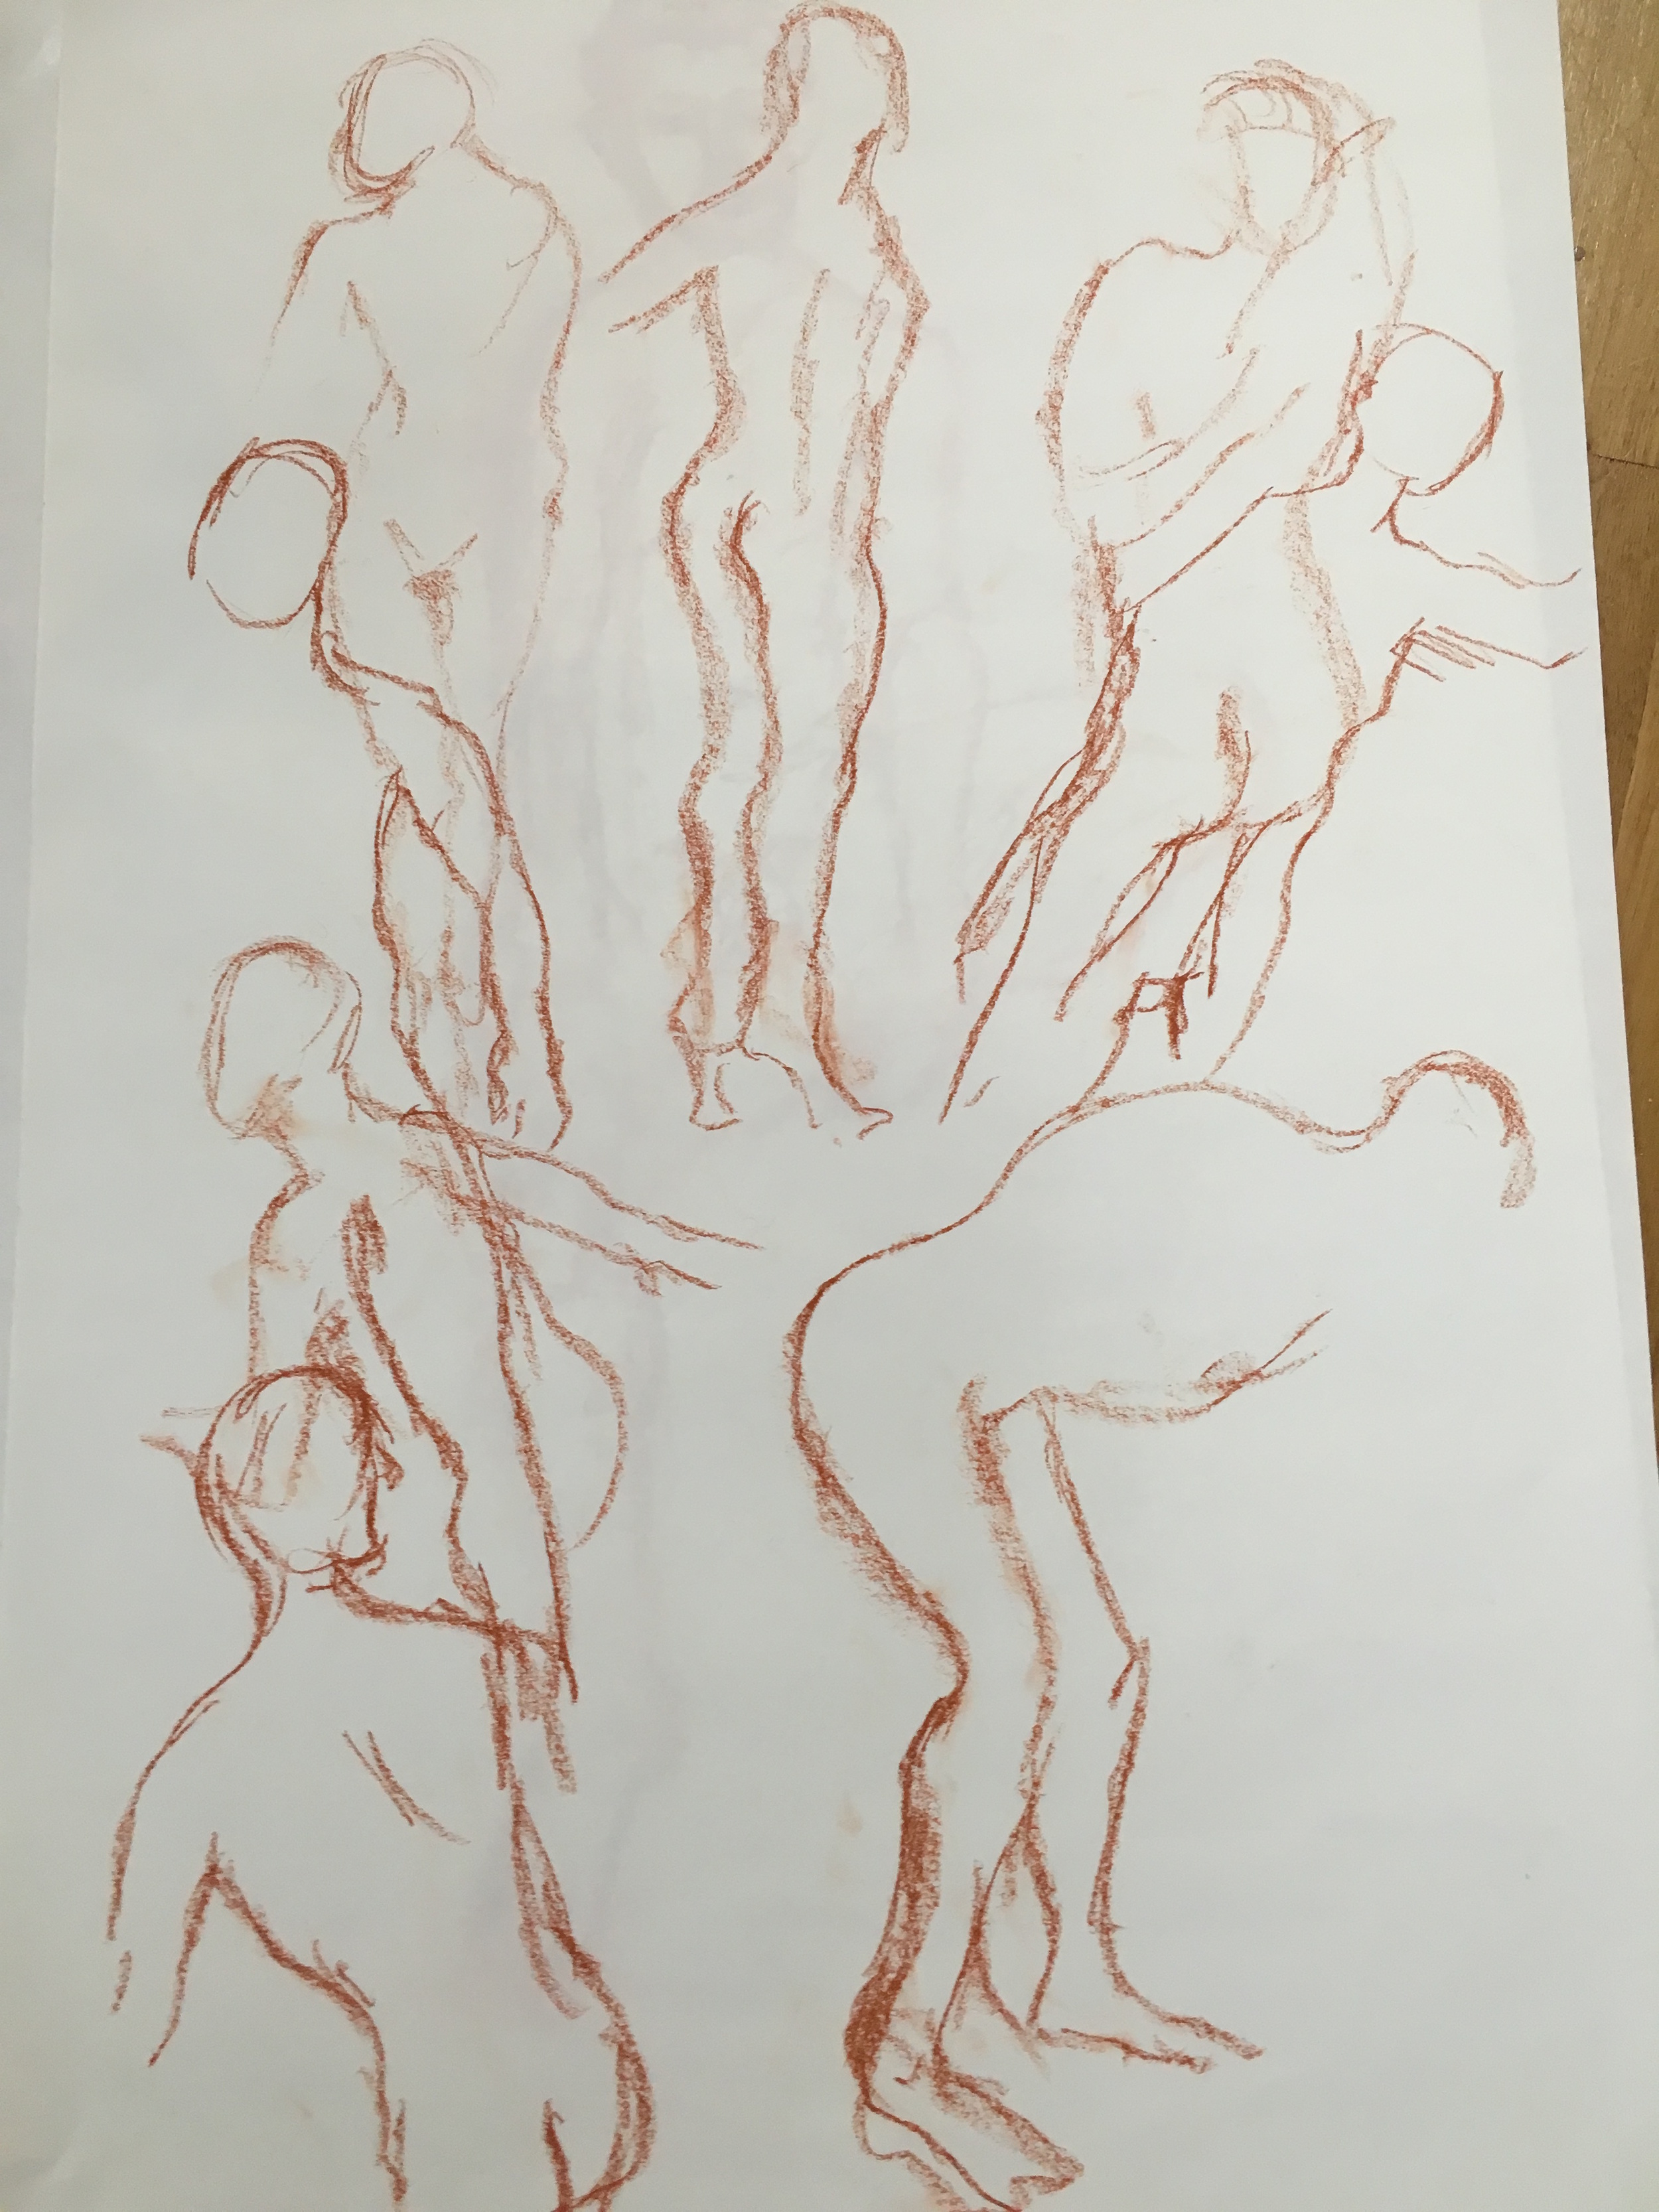 Series of 8x 1 minute poses